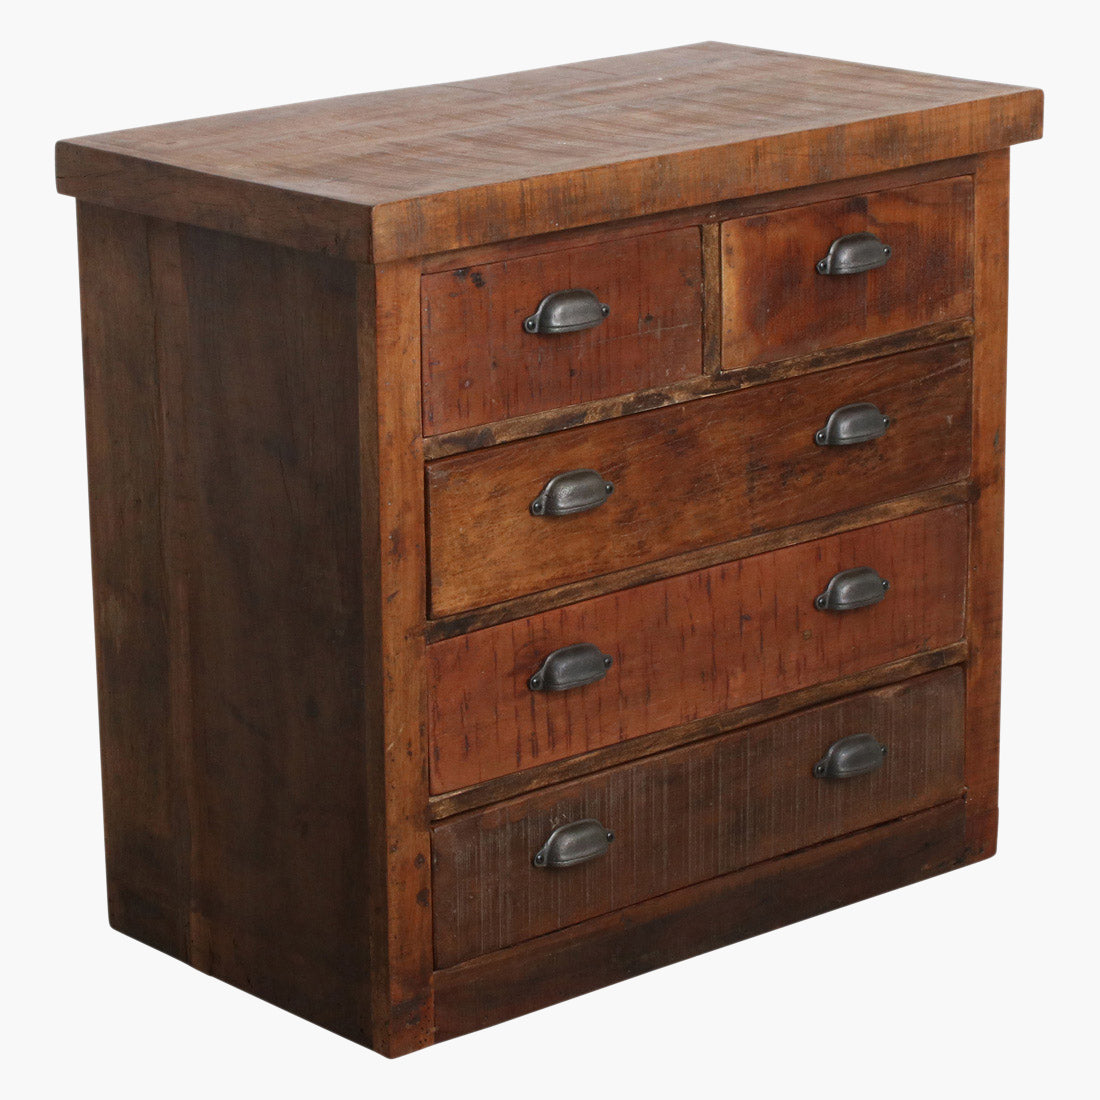 Factory 5-drawer sideboard